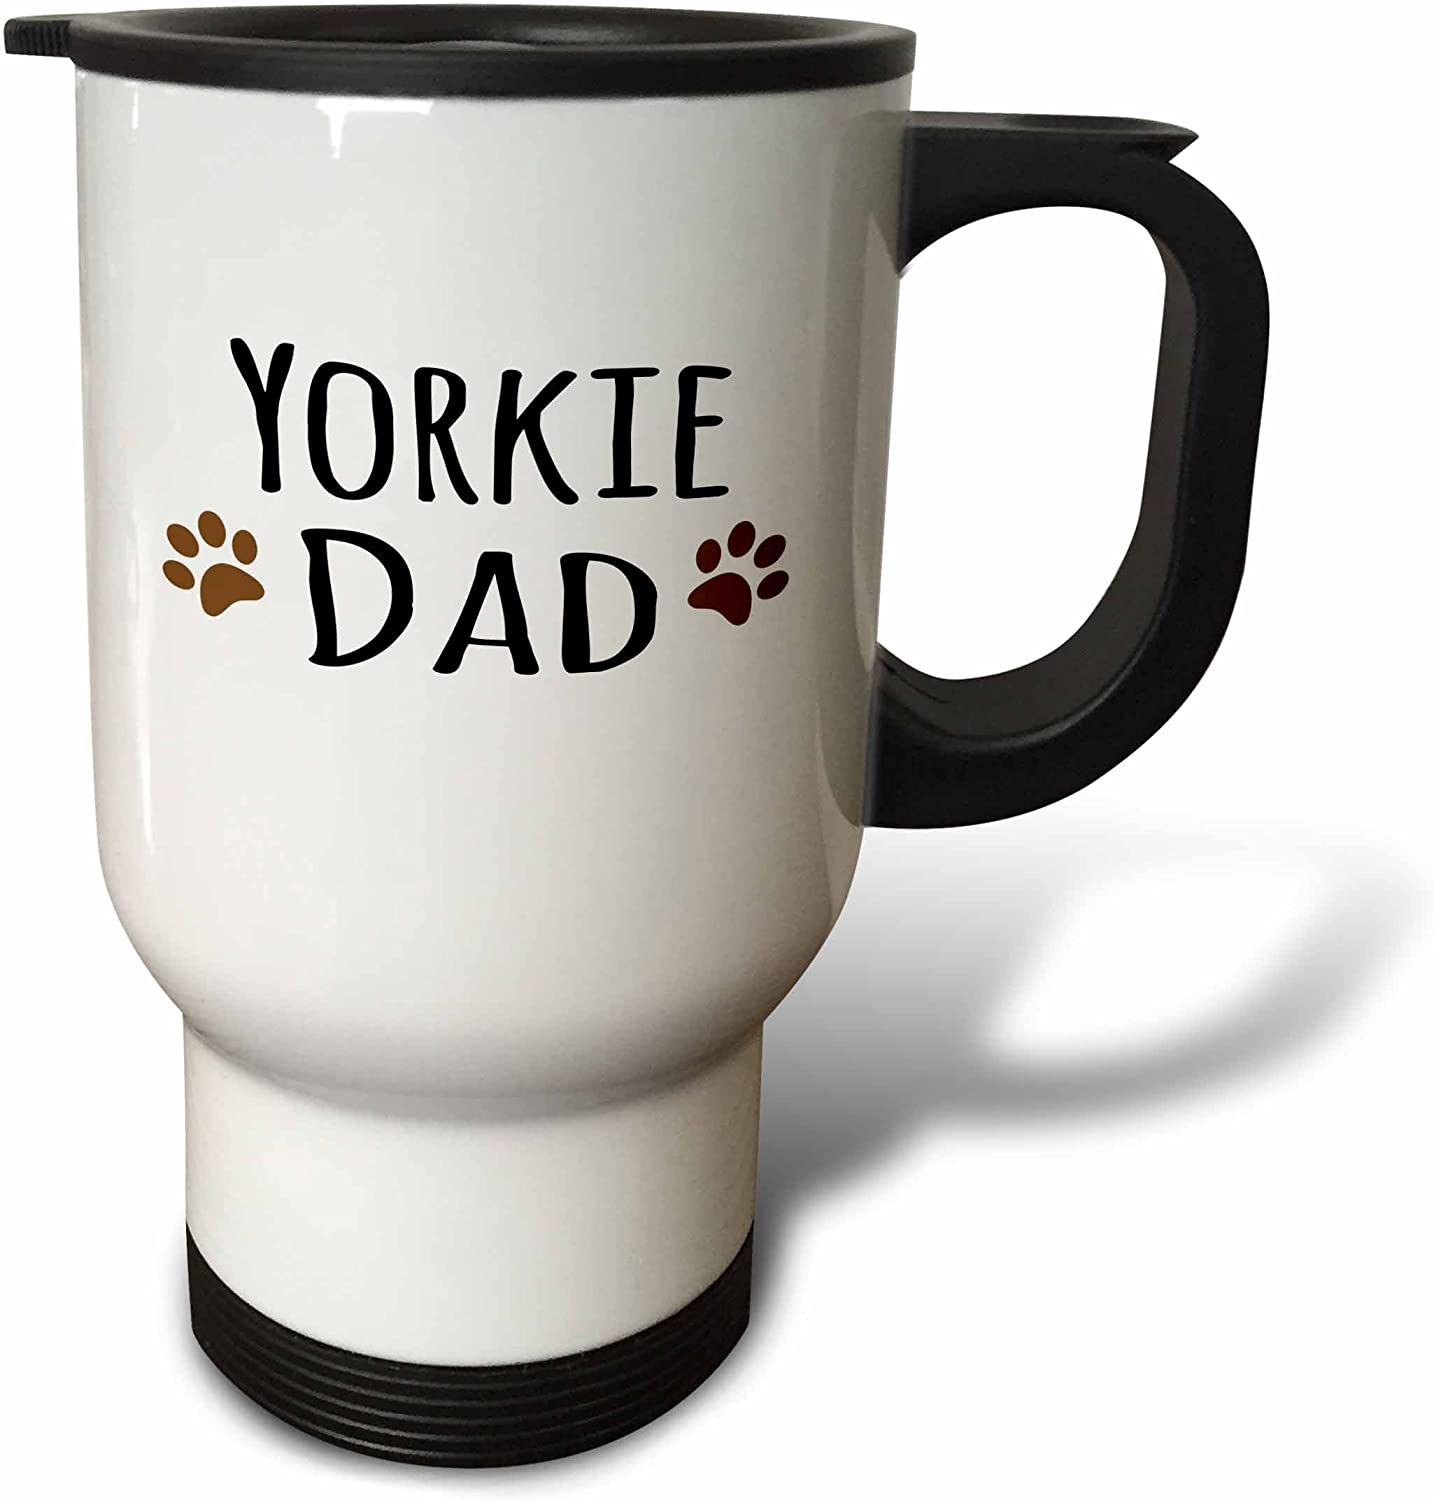 3dRose 2021new Rapid rise shipping free Yorkie Dog Dad Yorkshire Lover Doggie Doggy Breed Terrier